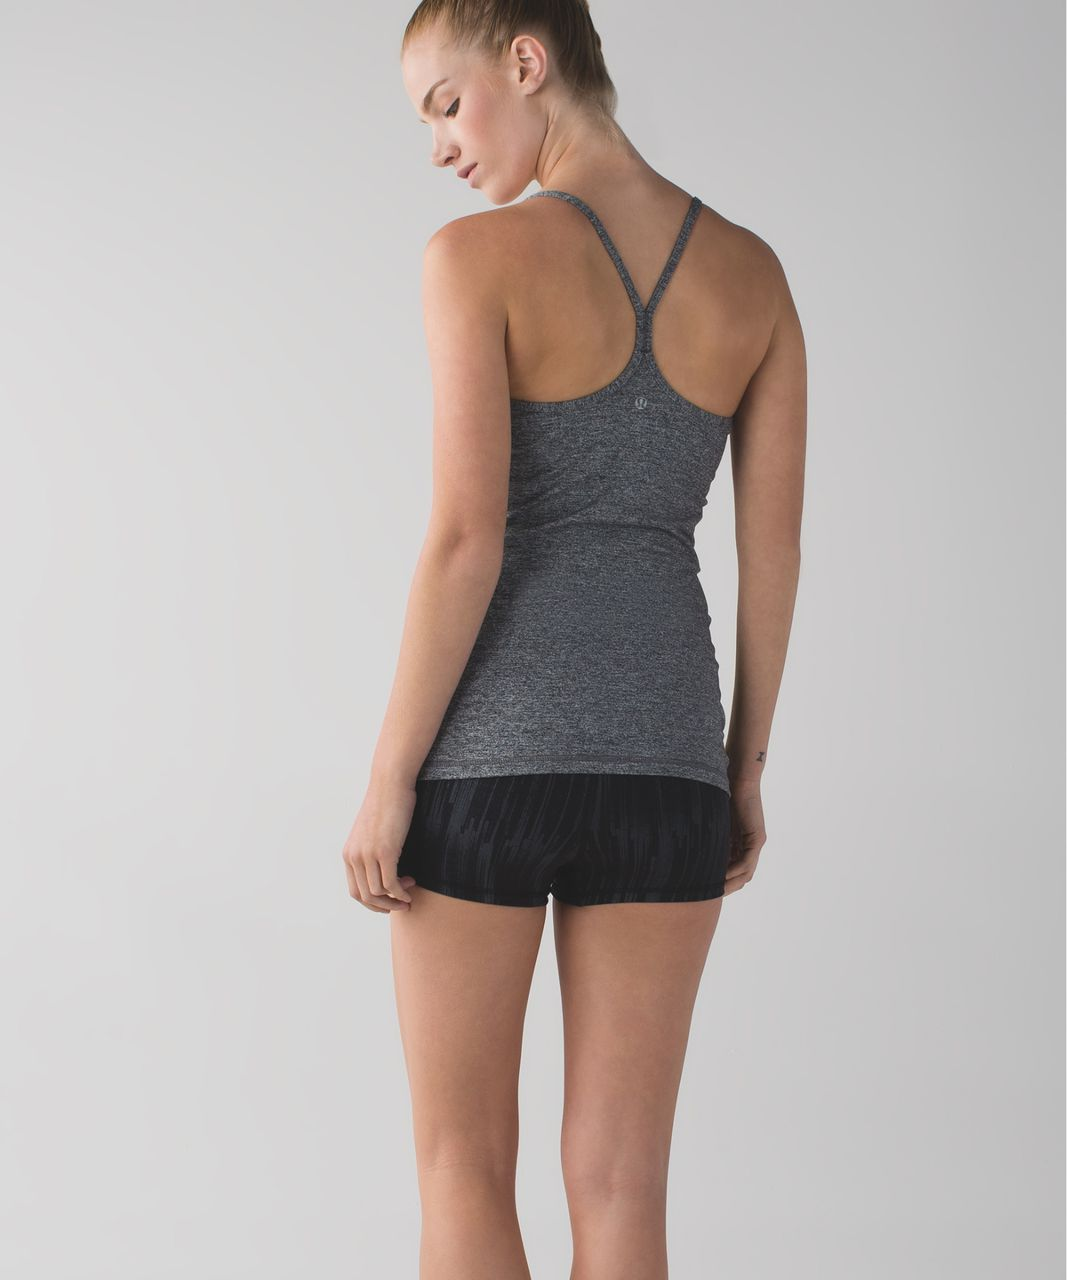 Lululemon Boogie Short *Luxtreme (Roll Down) - Scratch Match Black Multi